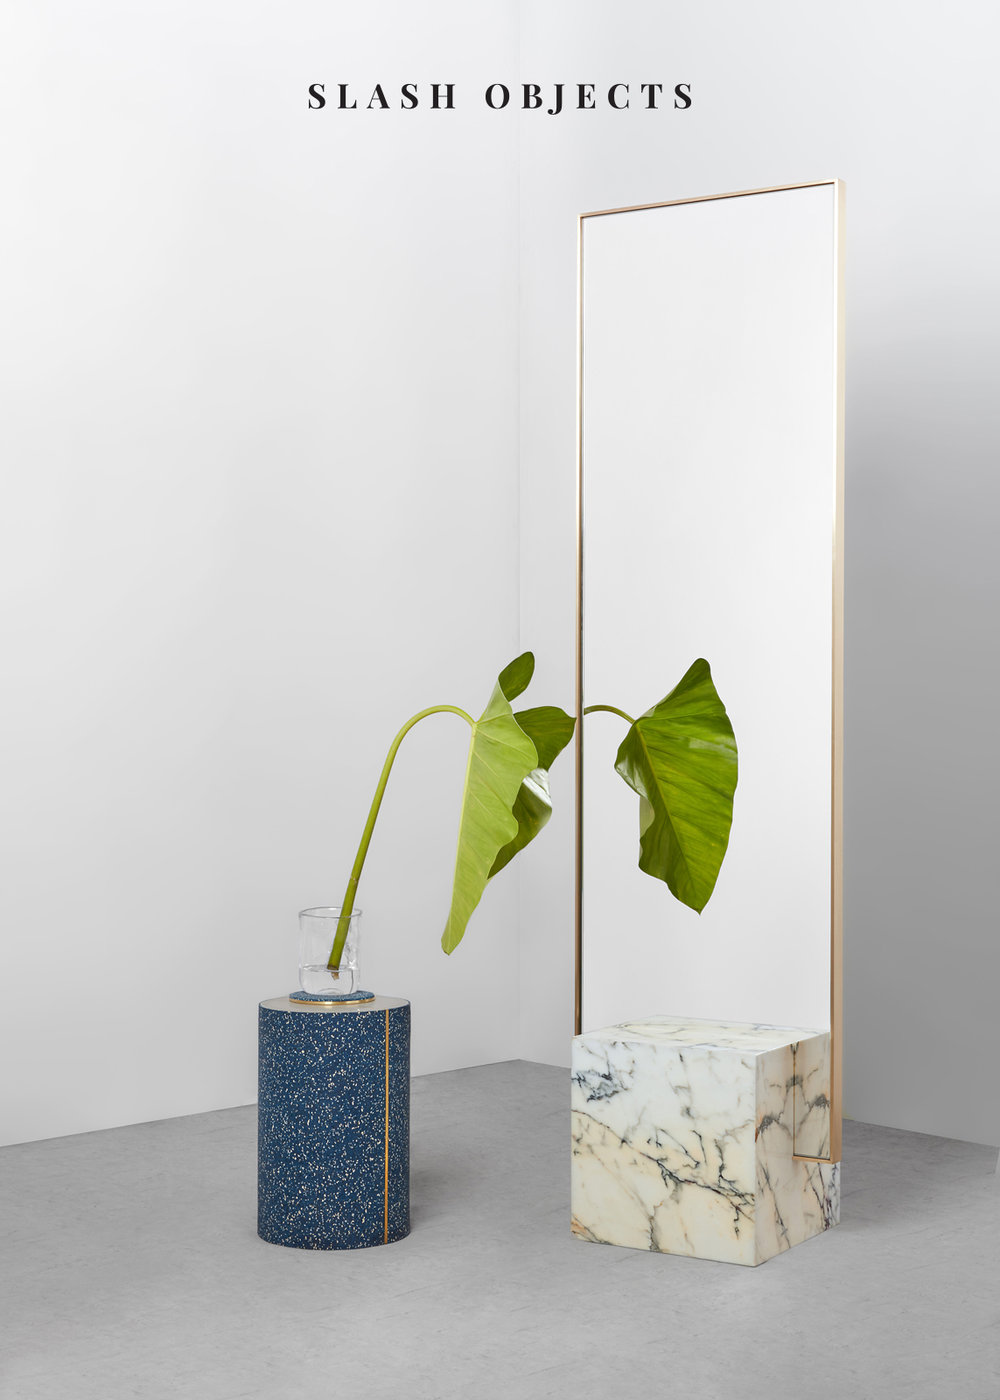 Slash-Objects-Coexist-Mirror-and-Rubber-CYL_web-ICFF.jpg